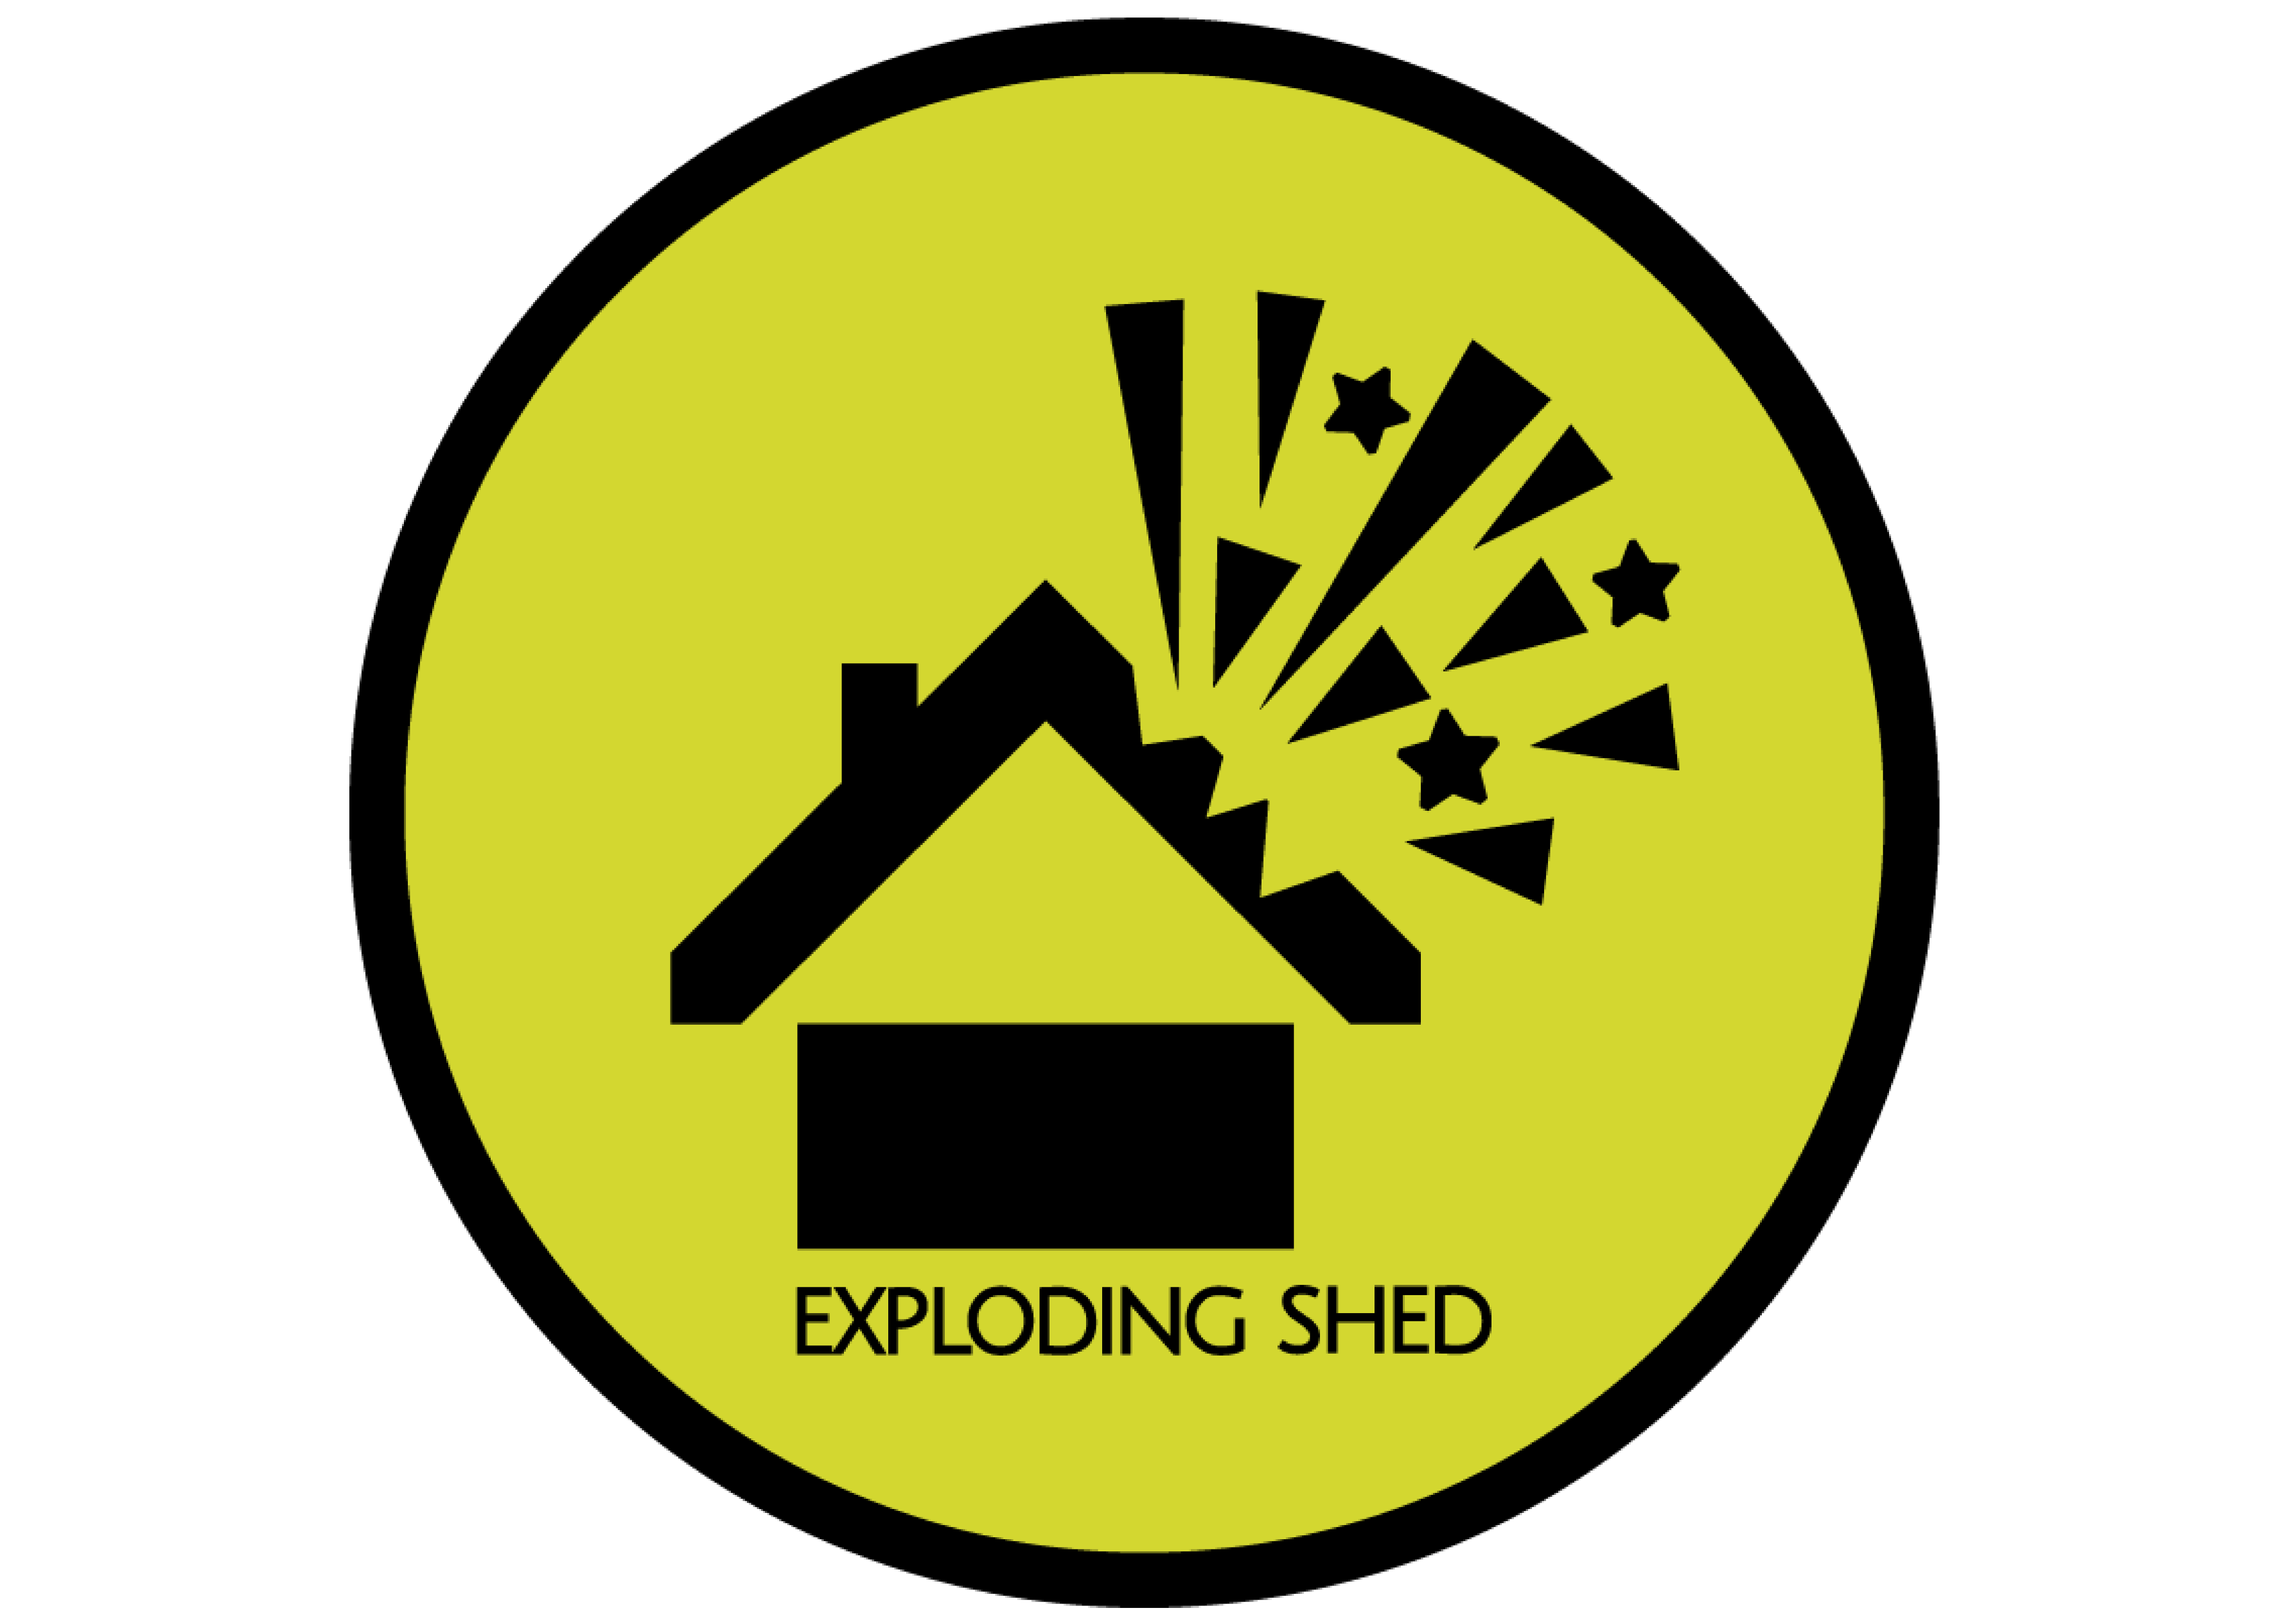 Exploding_shed